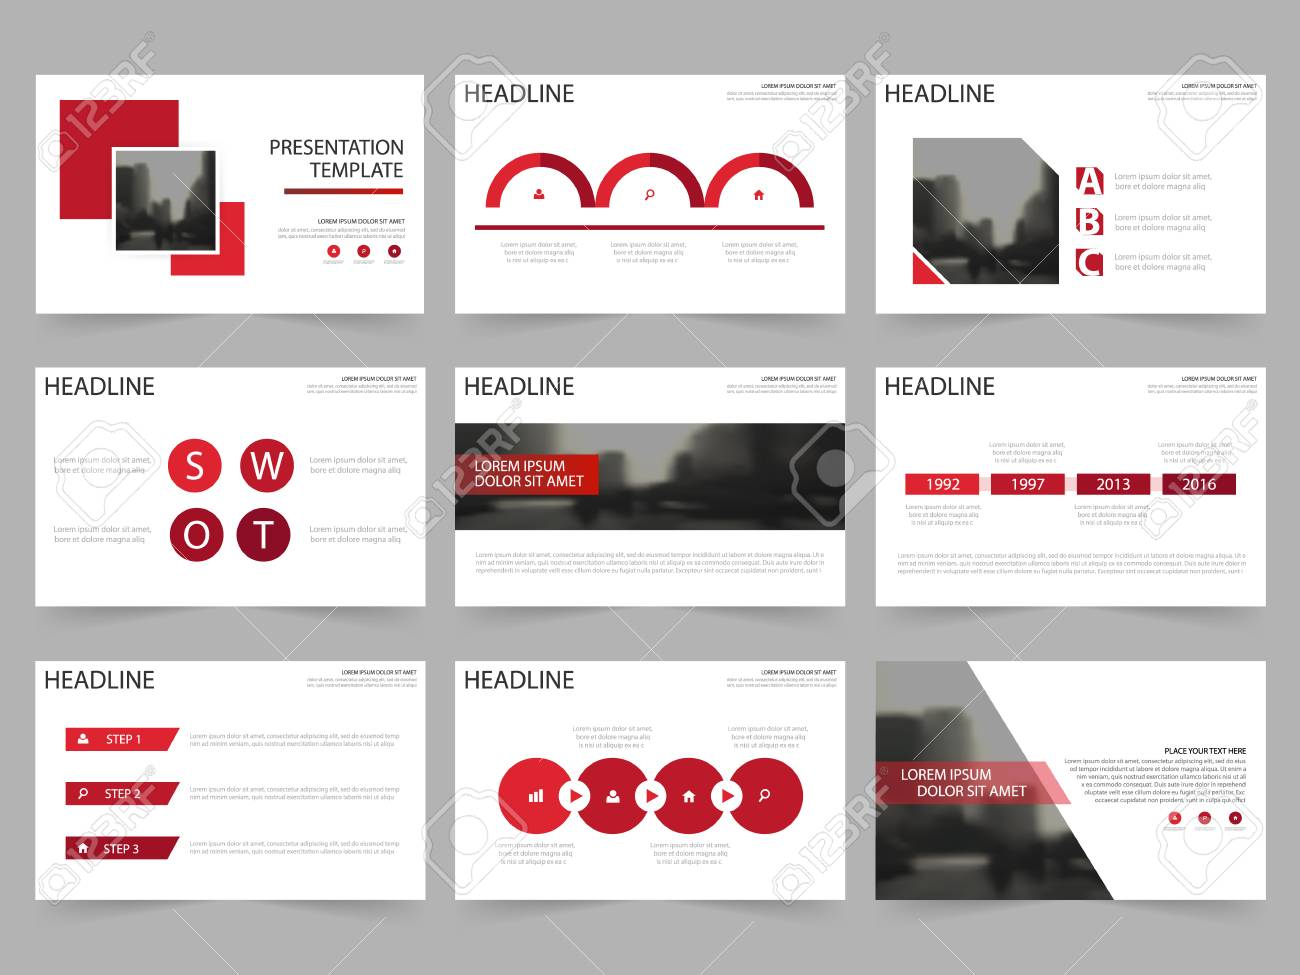 Red Square Abstract Presentation Templates, Infographic Elements ...